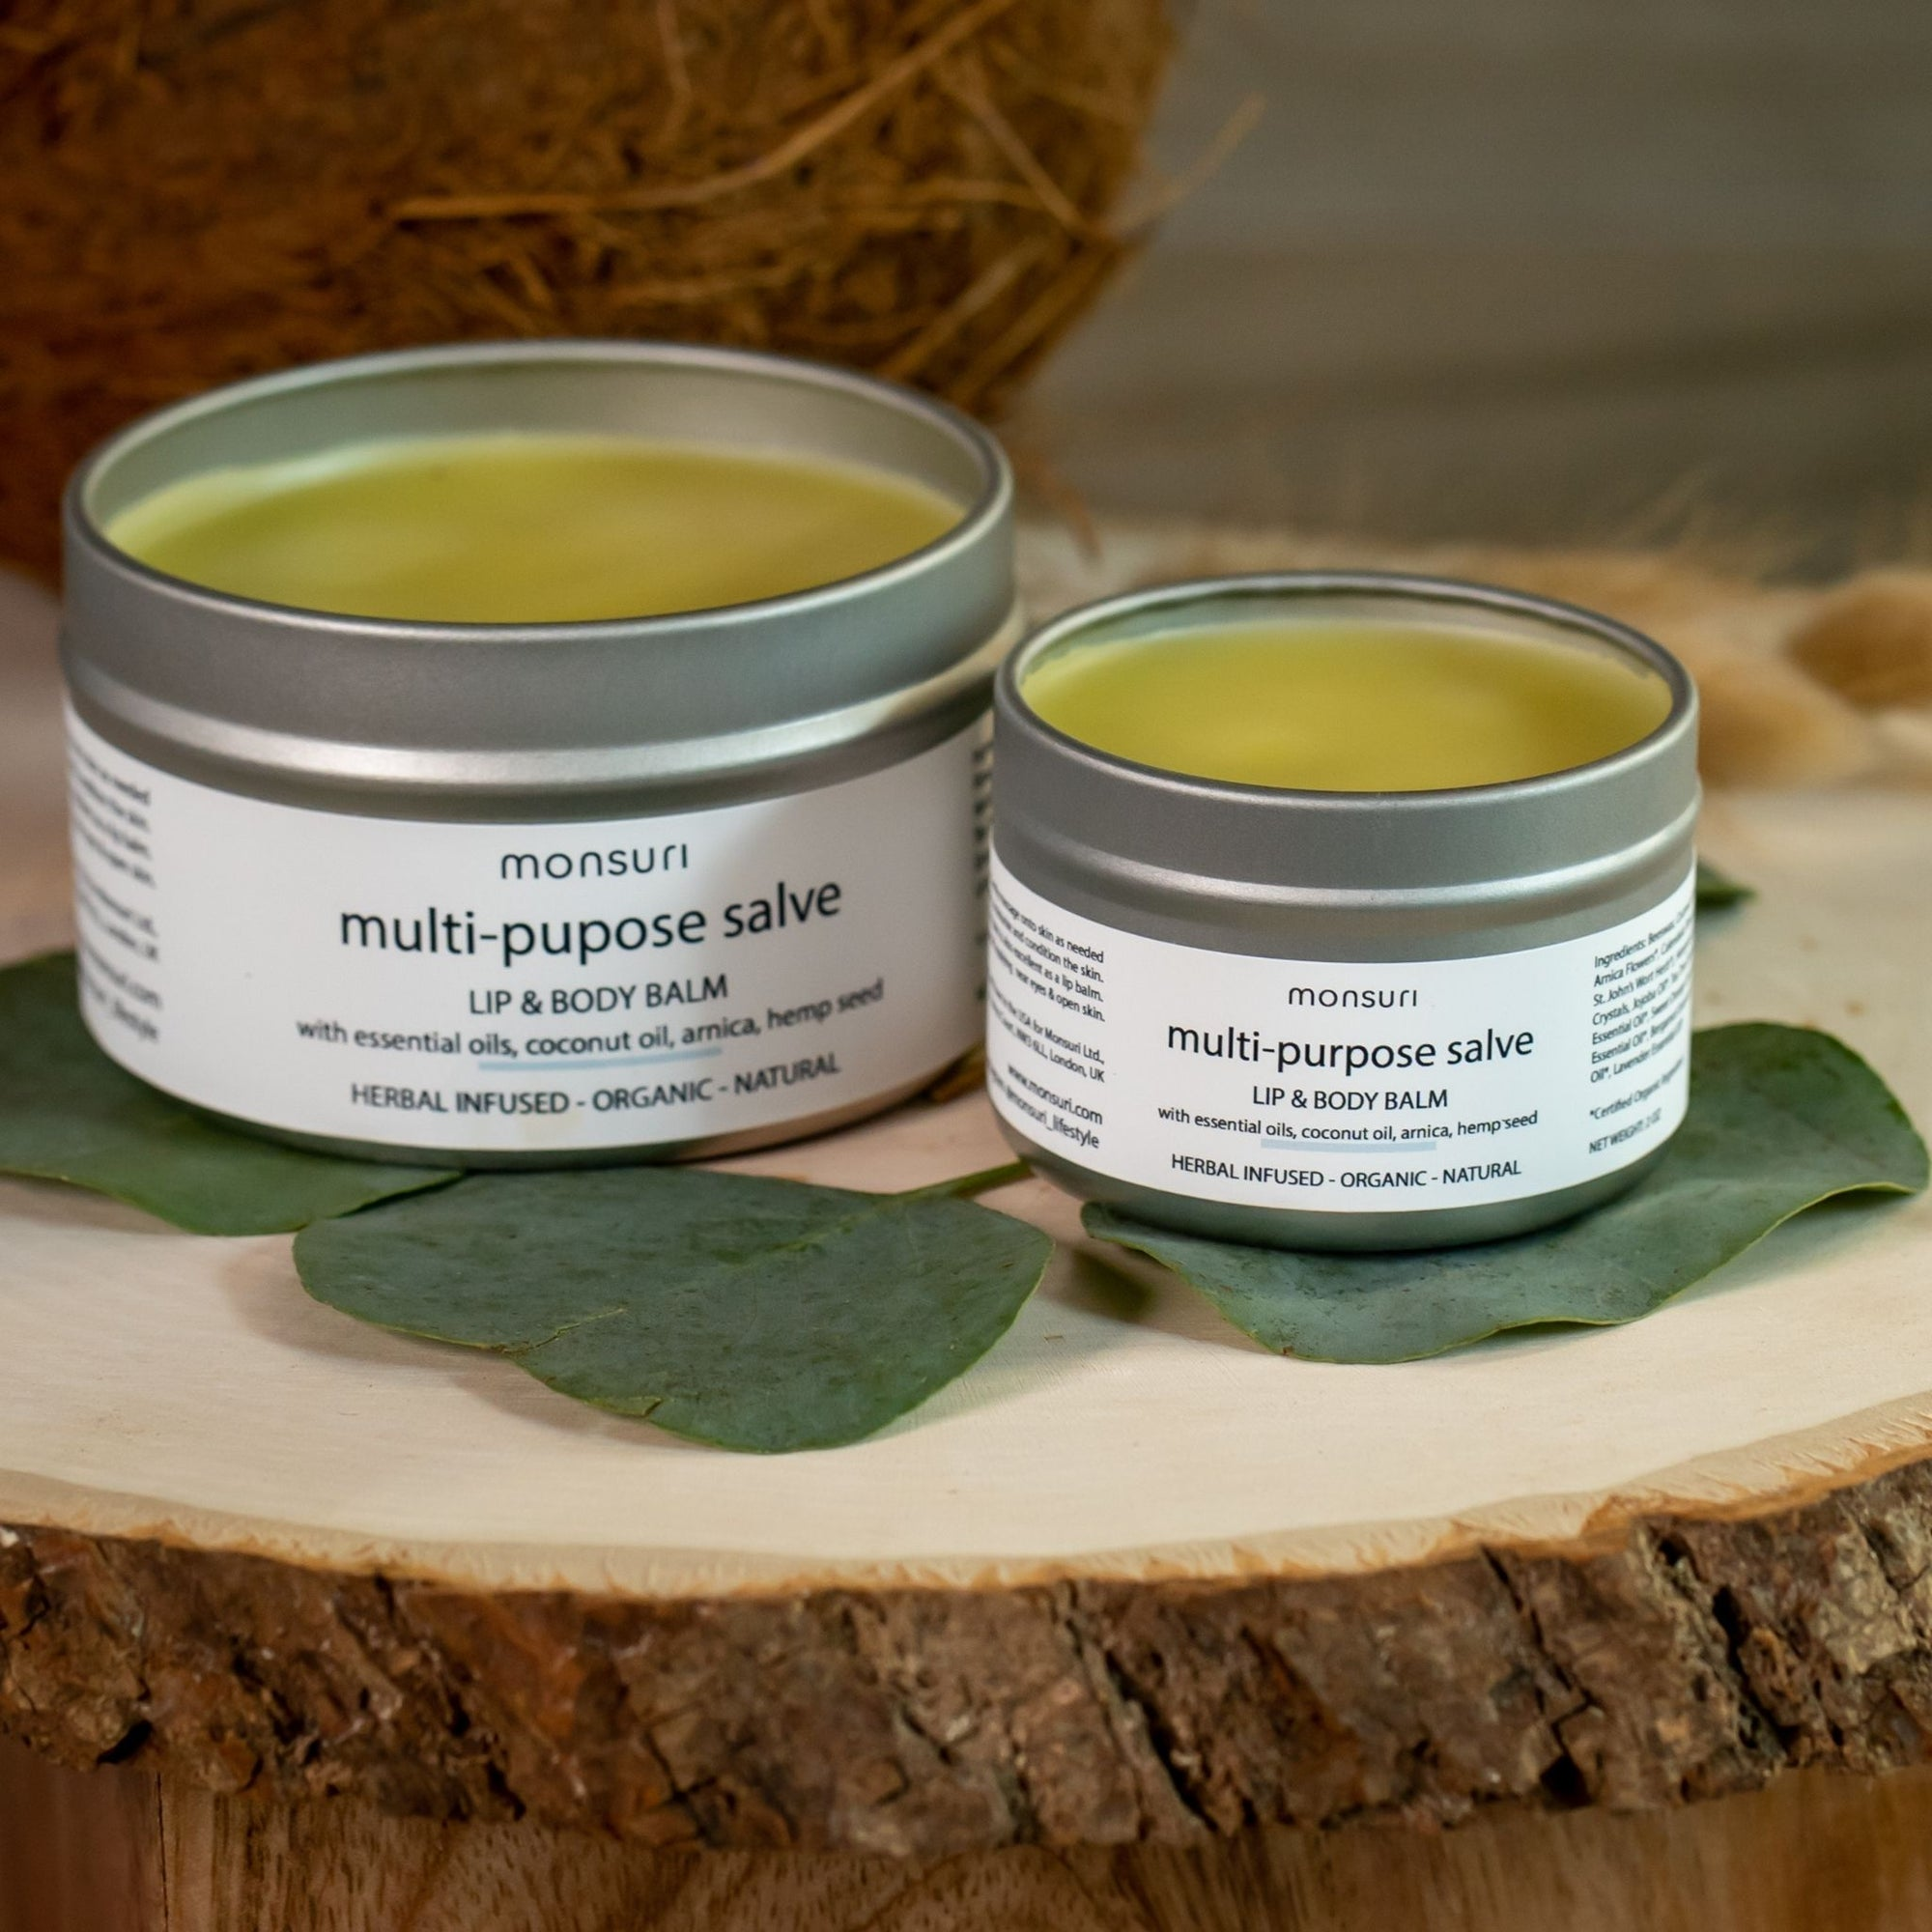 Natural Body Balm Lip Care products: 2oz Body Moisturizer Salve for Dry Skin, Thigh Anti Chafing Protection, Cracked Feet.